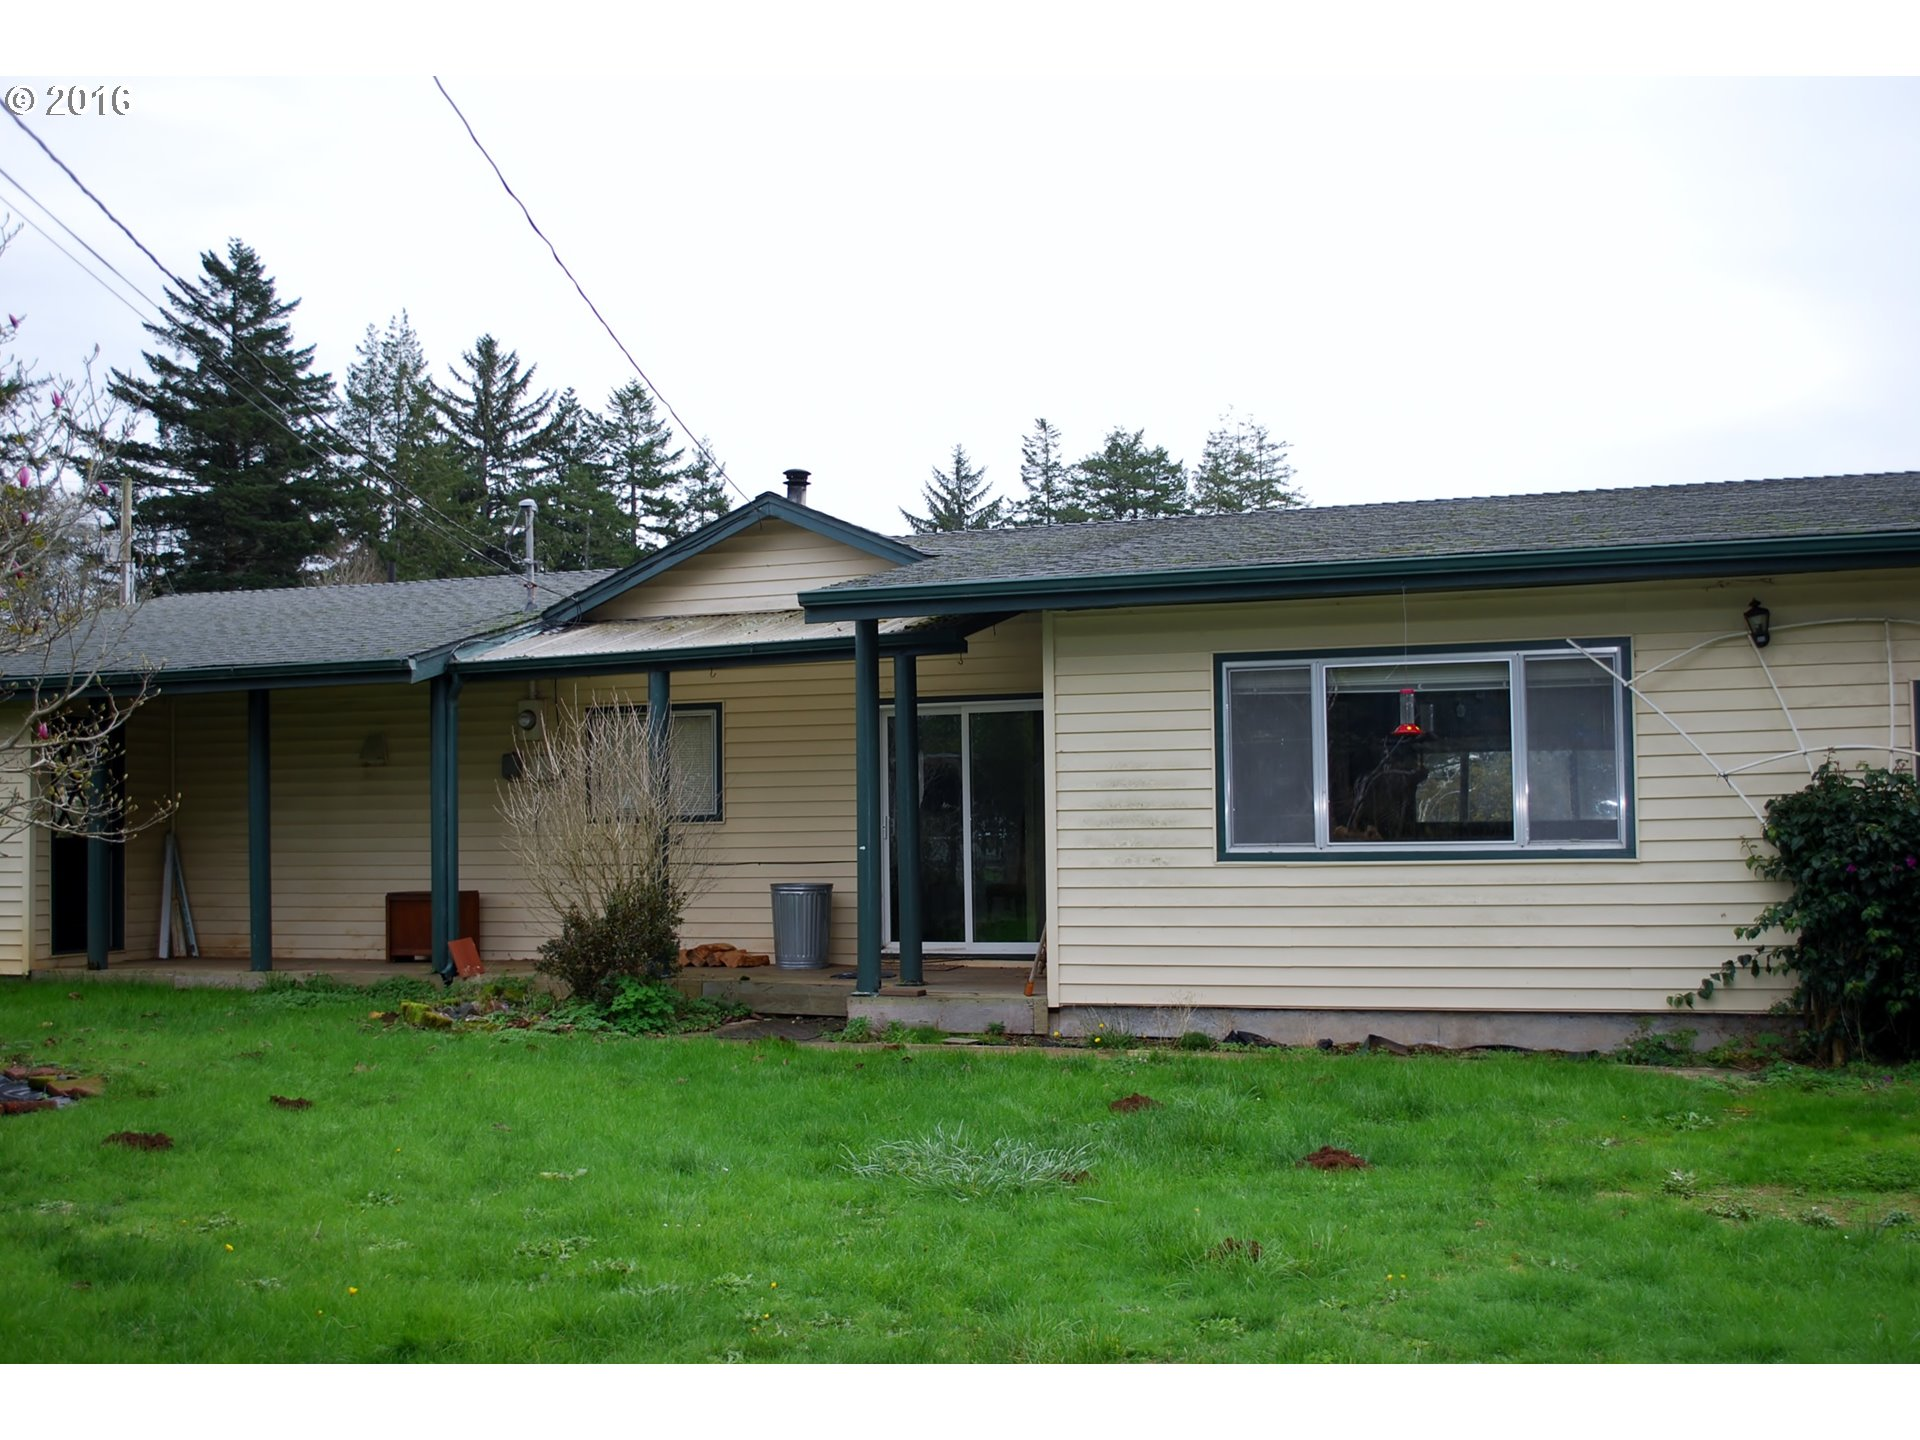 1682 sq. ft 4 bedrooms 2 bathrooms  House For Sale, Brookings, OR